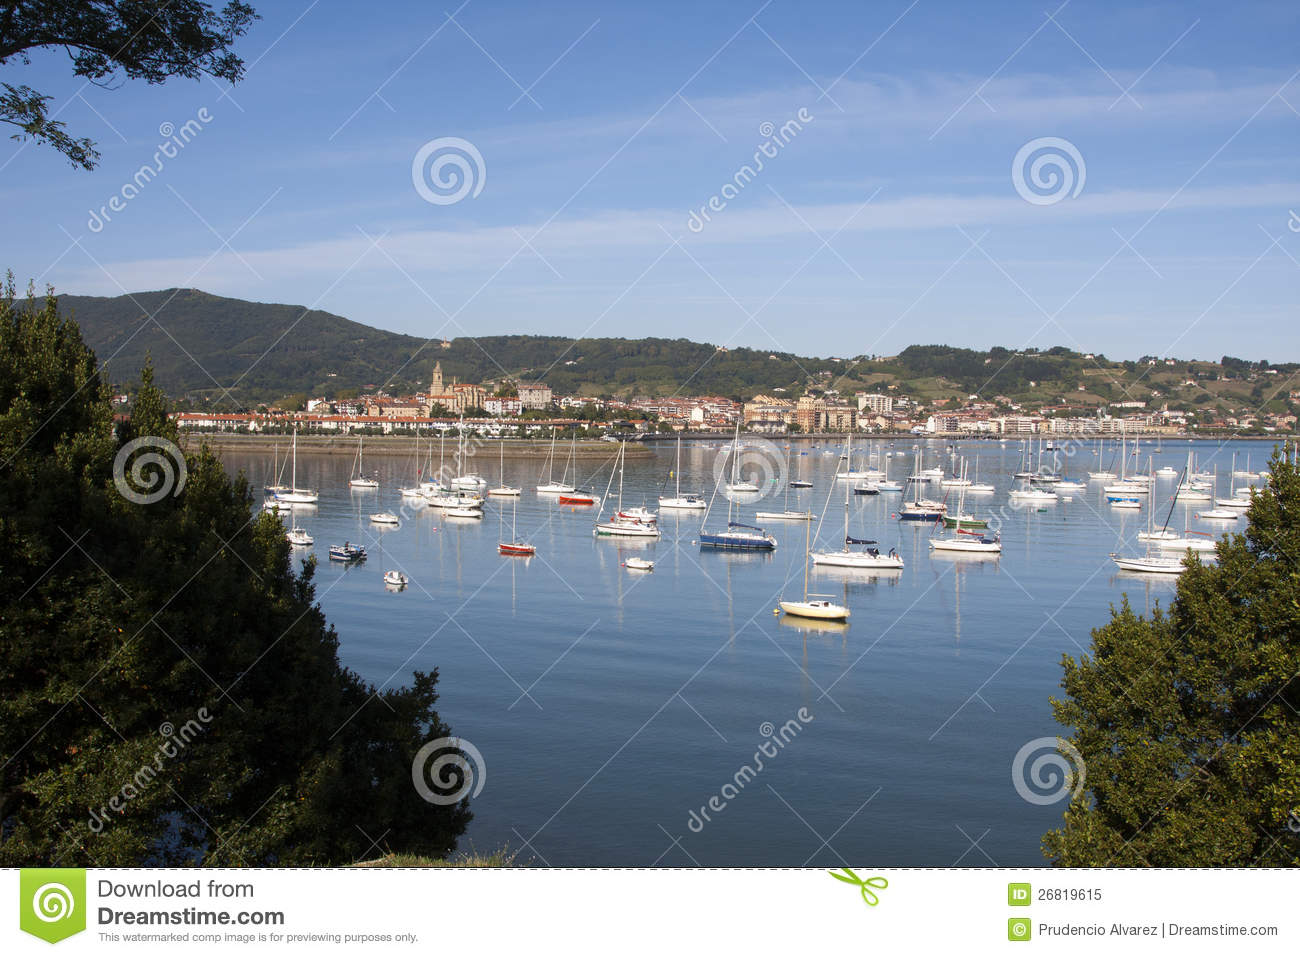 Hendaye france royalty free stock photo image 26819615 for Hendaye france